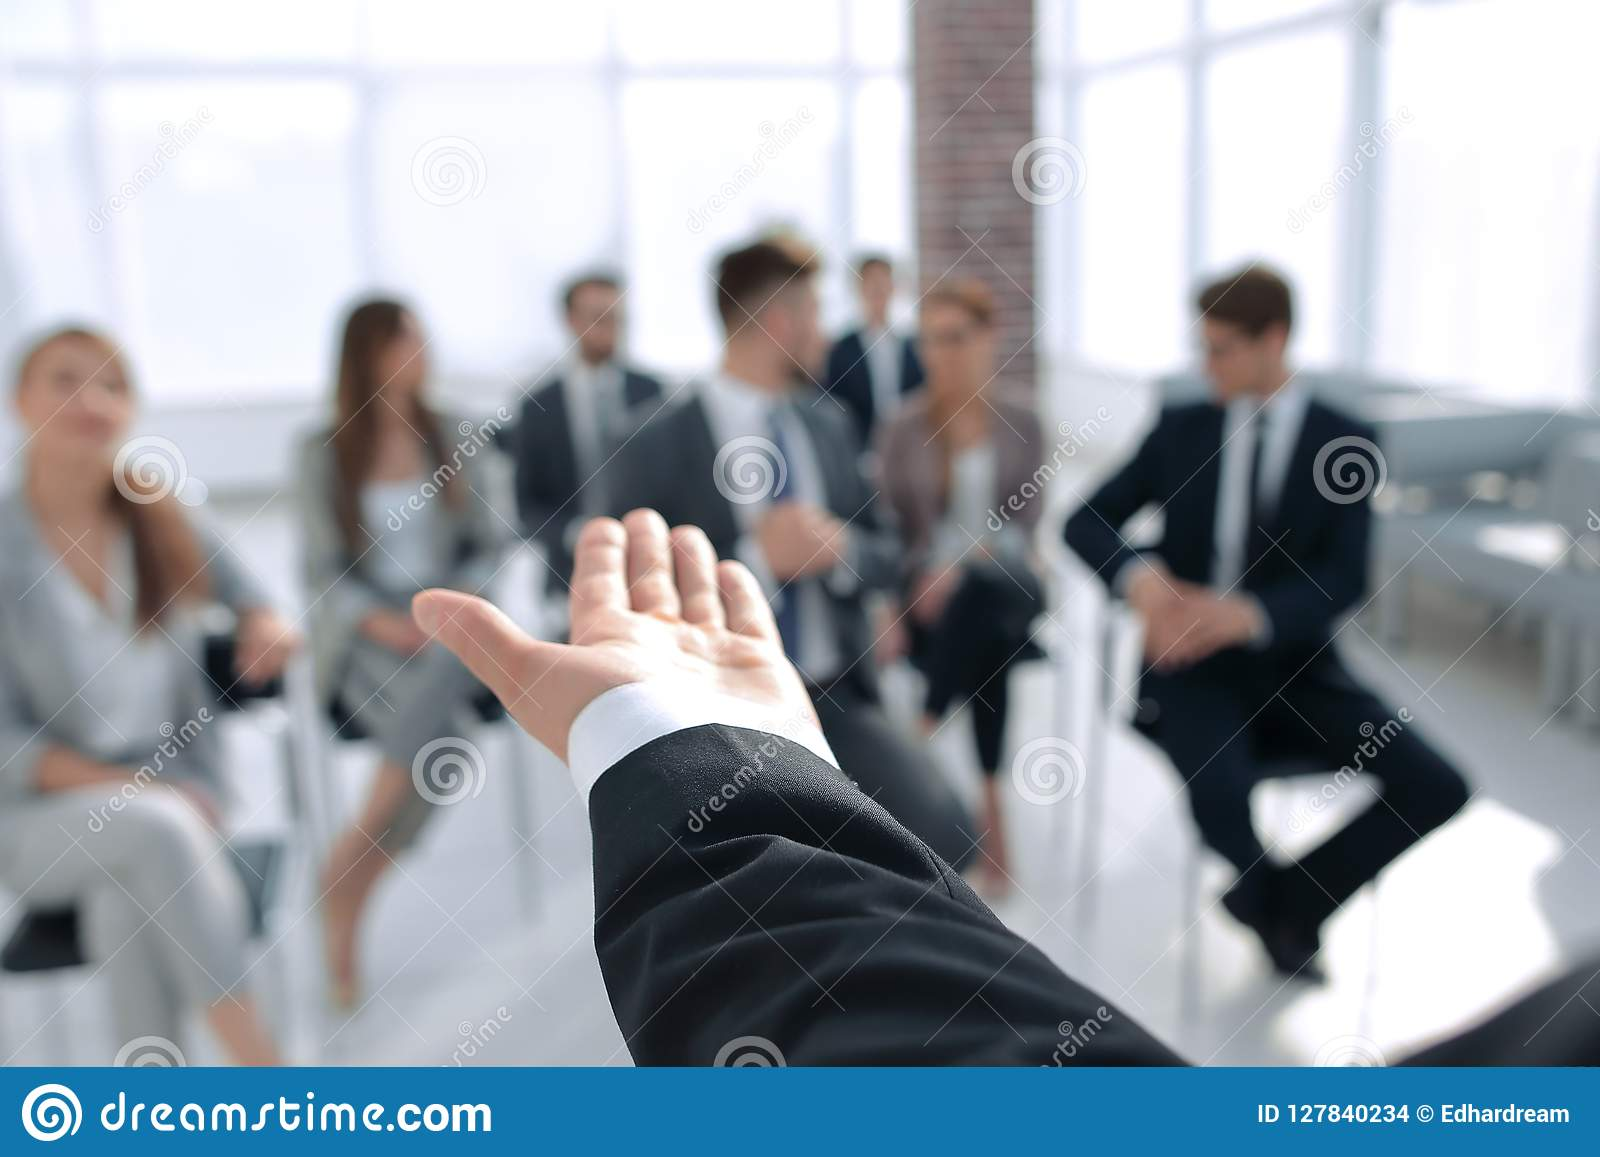 Rear view.Business coach gesturing his hand in front of a group of people.